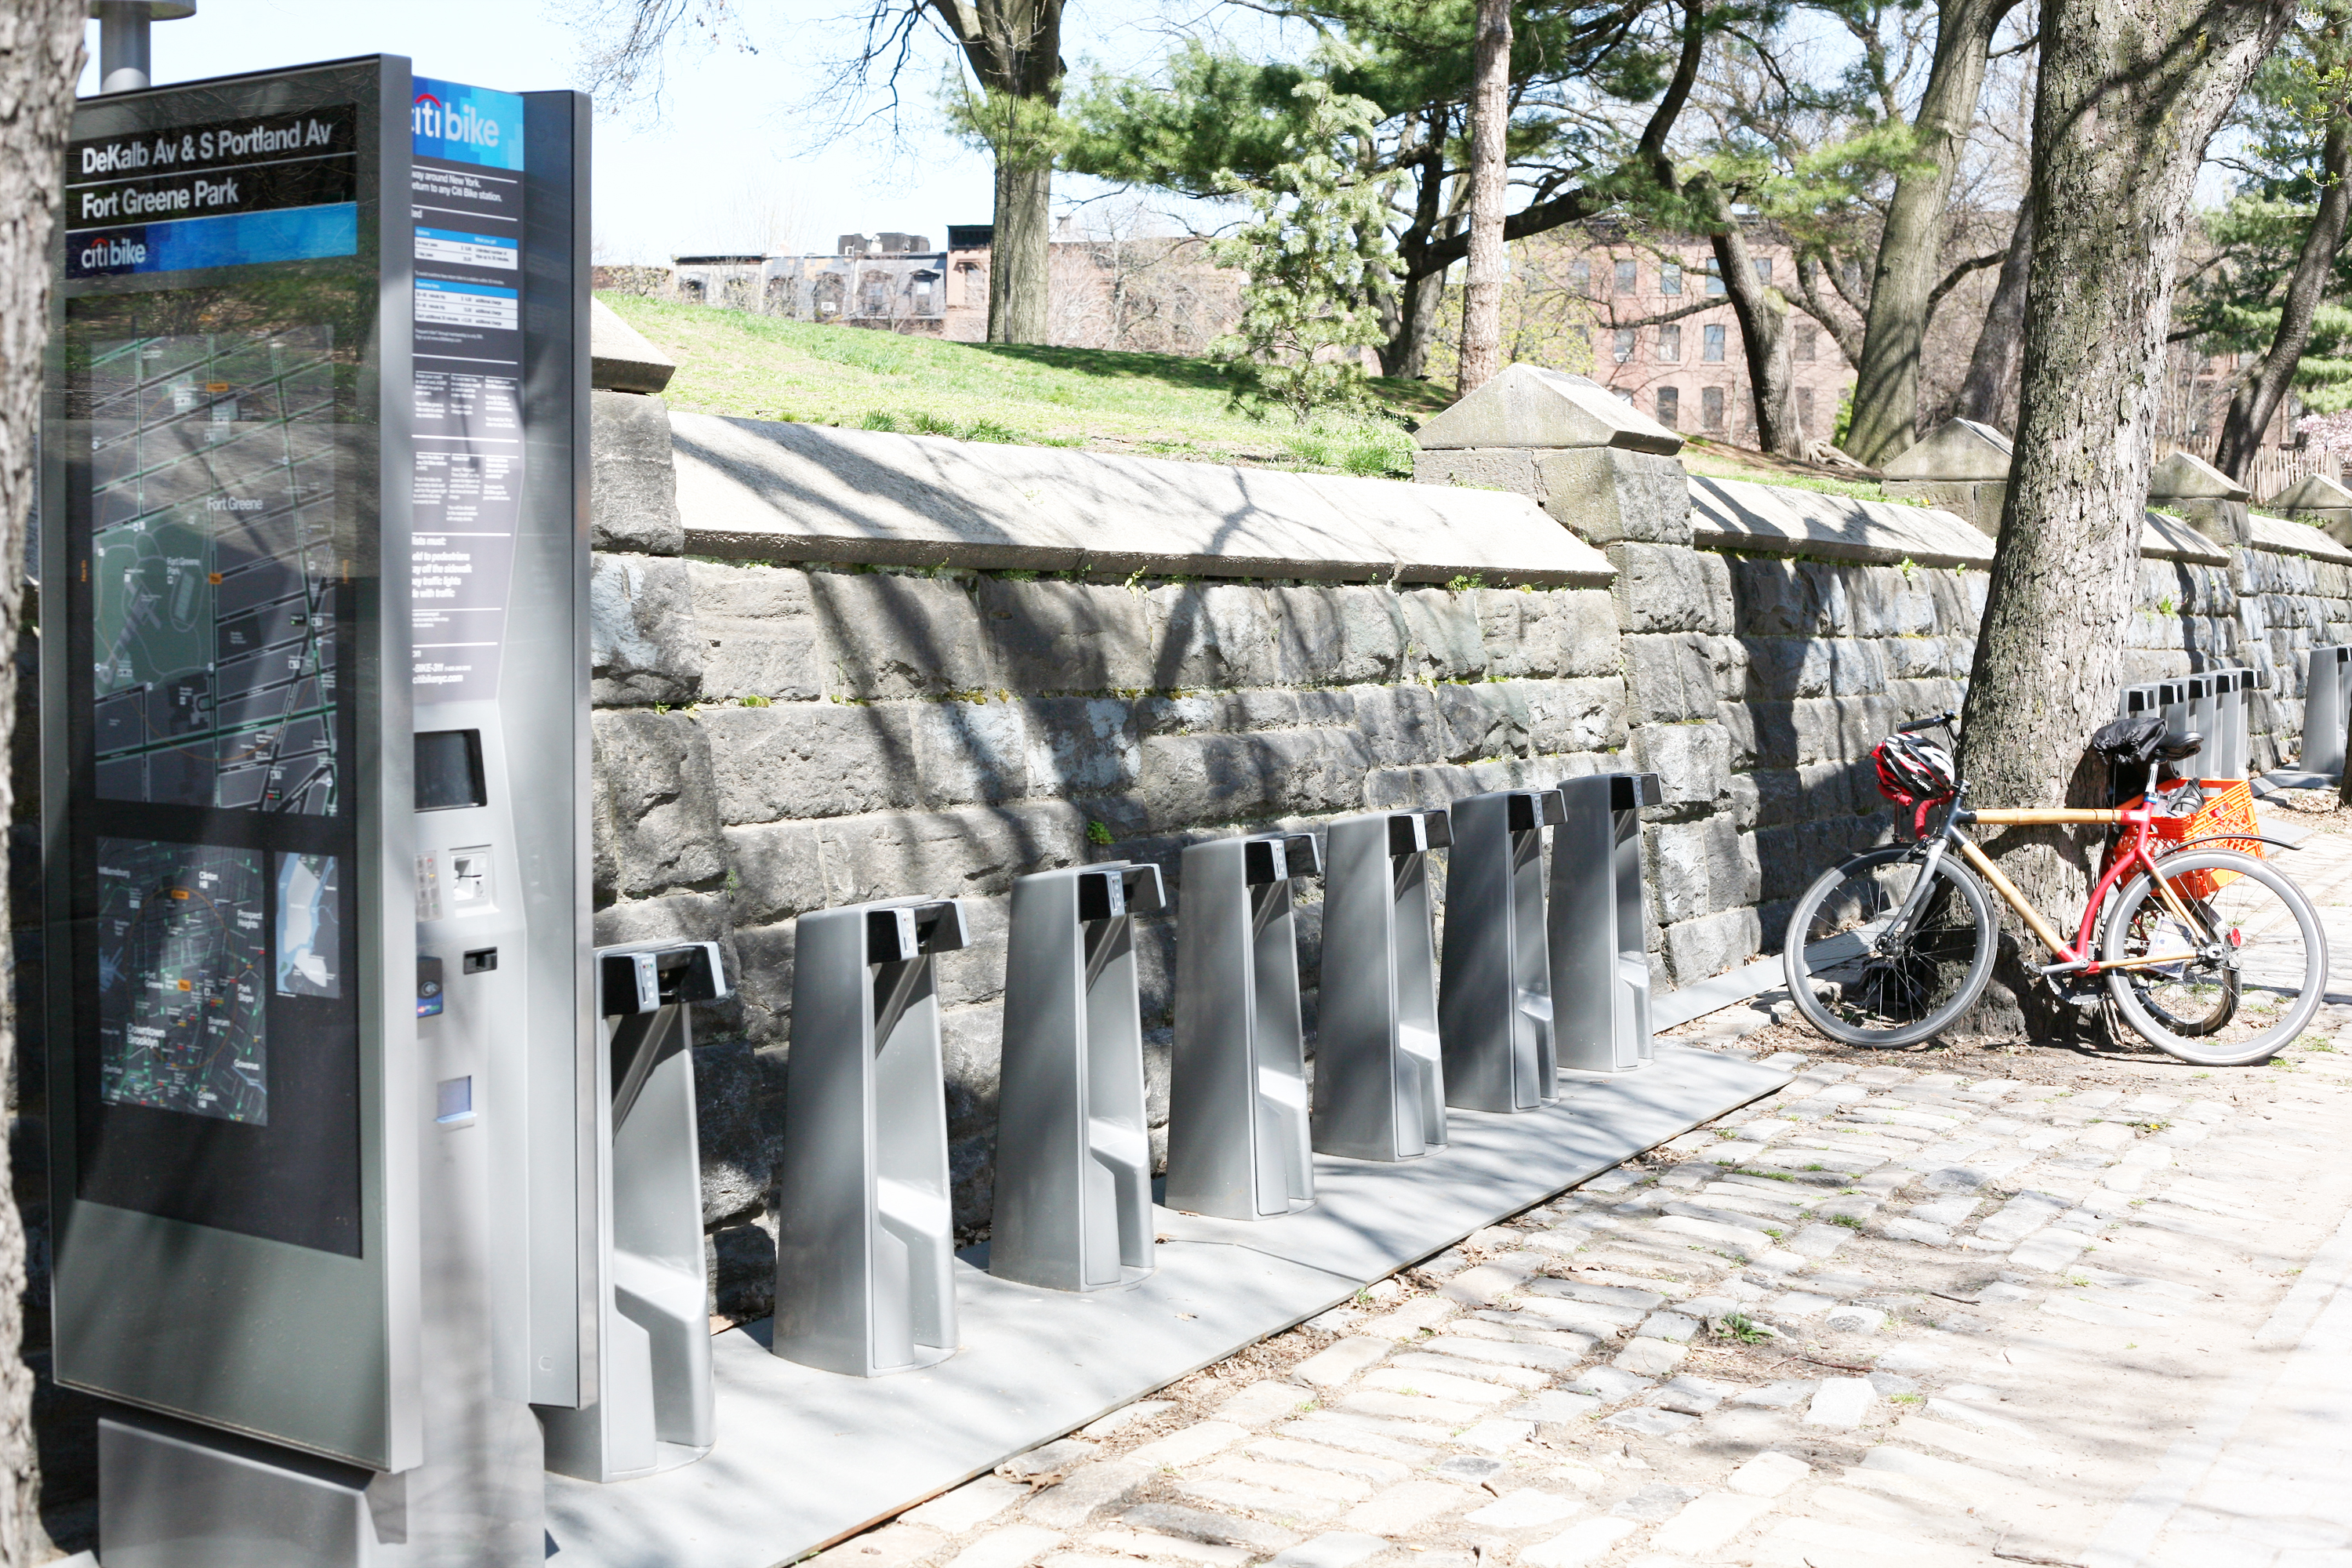 Bike stations, like these on Dekalb Avenue outside Fort Greene Park, started being installed earlier this month ahead of the Citi Bike share program expected to be up and running in May. Photo: Daniel Broadhurst